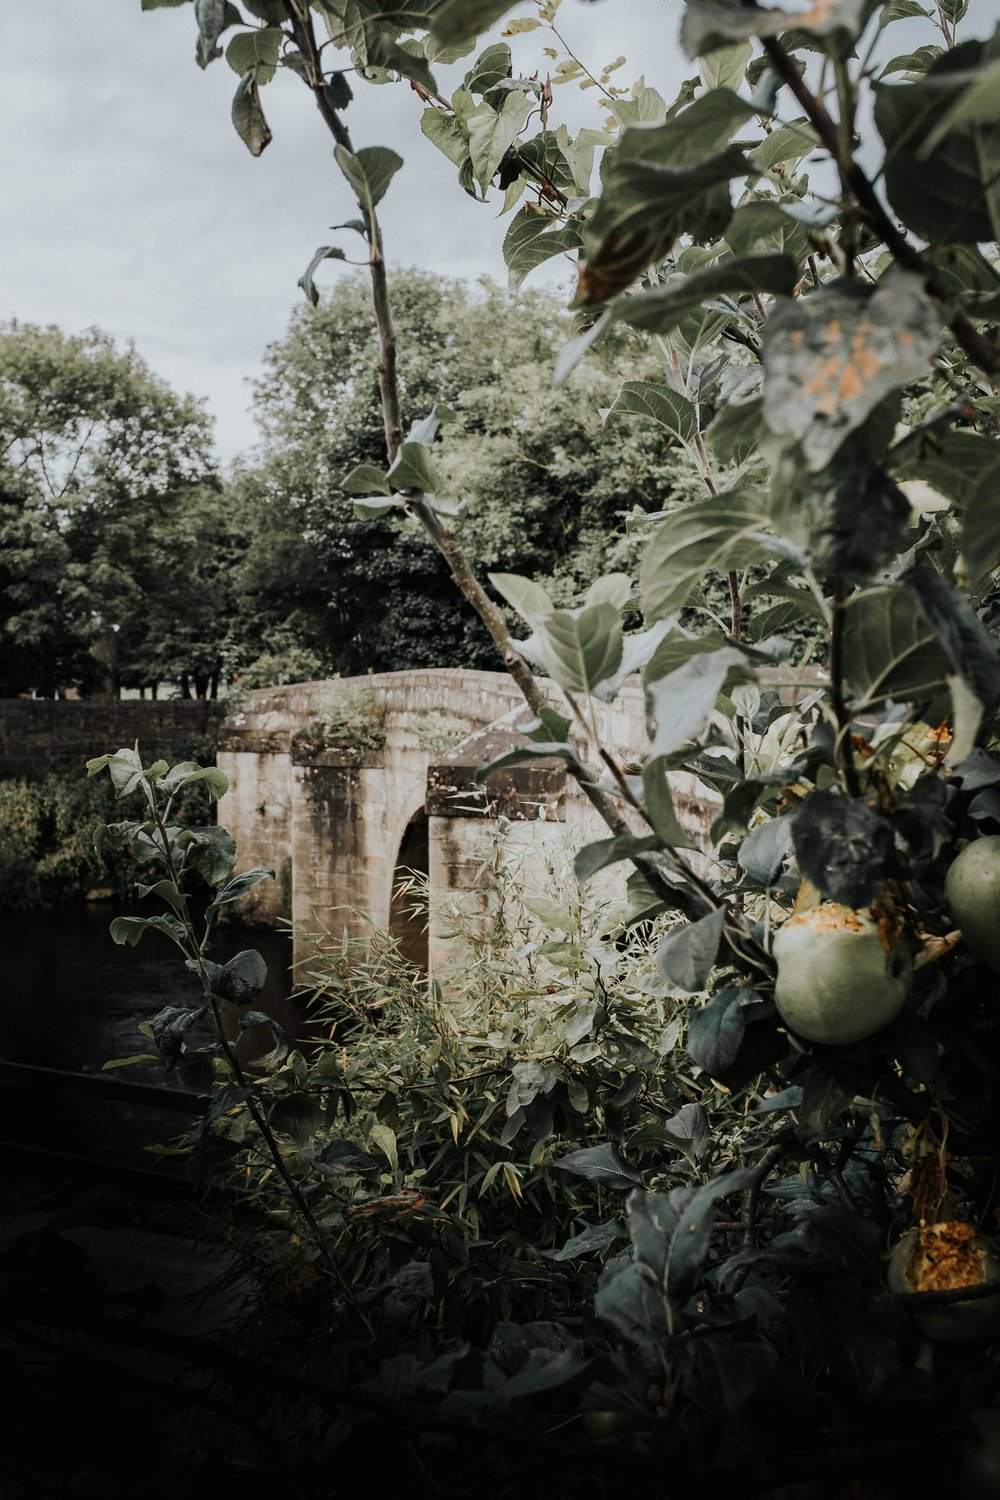 Darley Bridge & Apples